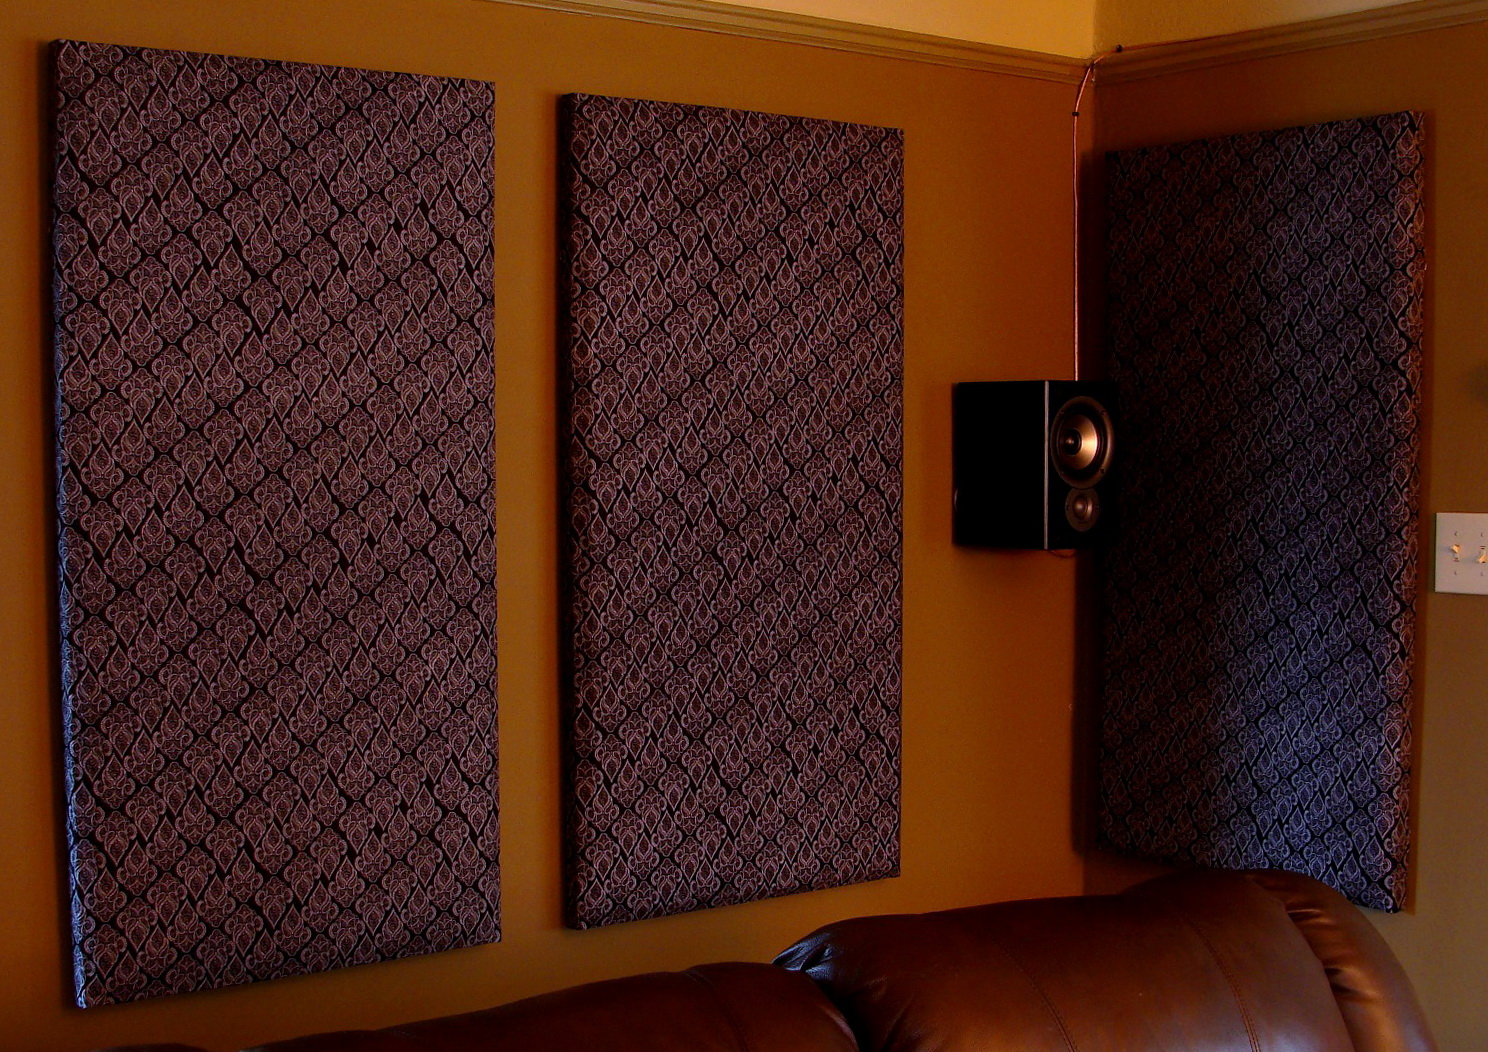 Sound Absorbing Curtains Diy Home Design Ideas